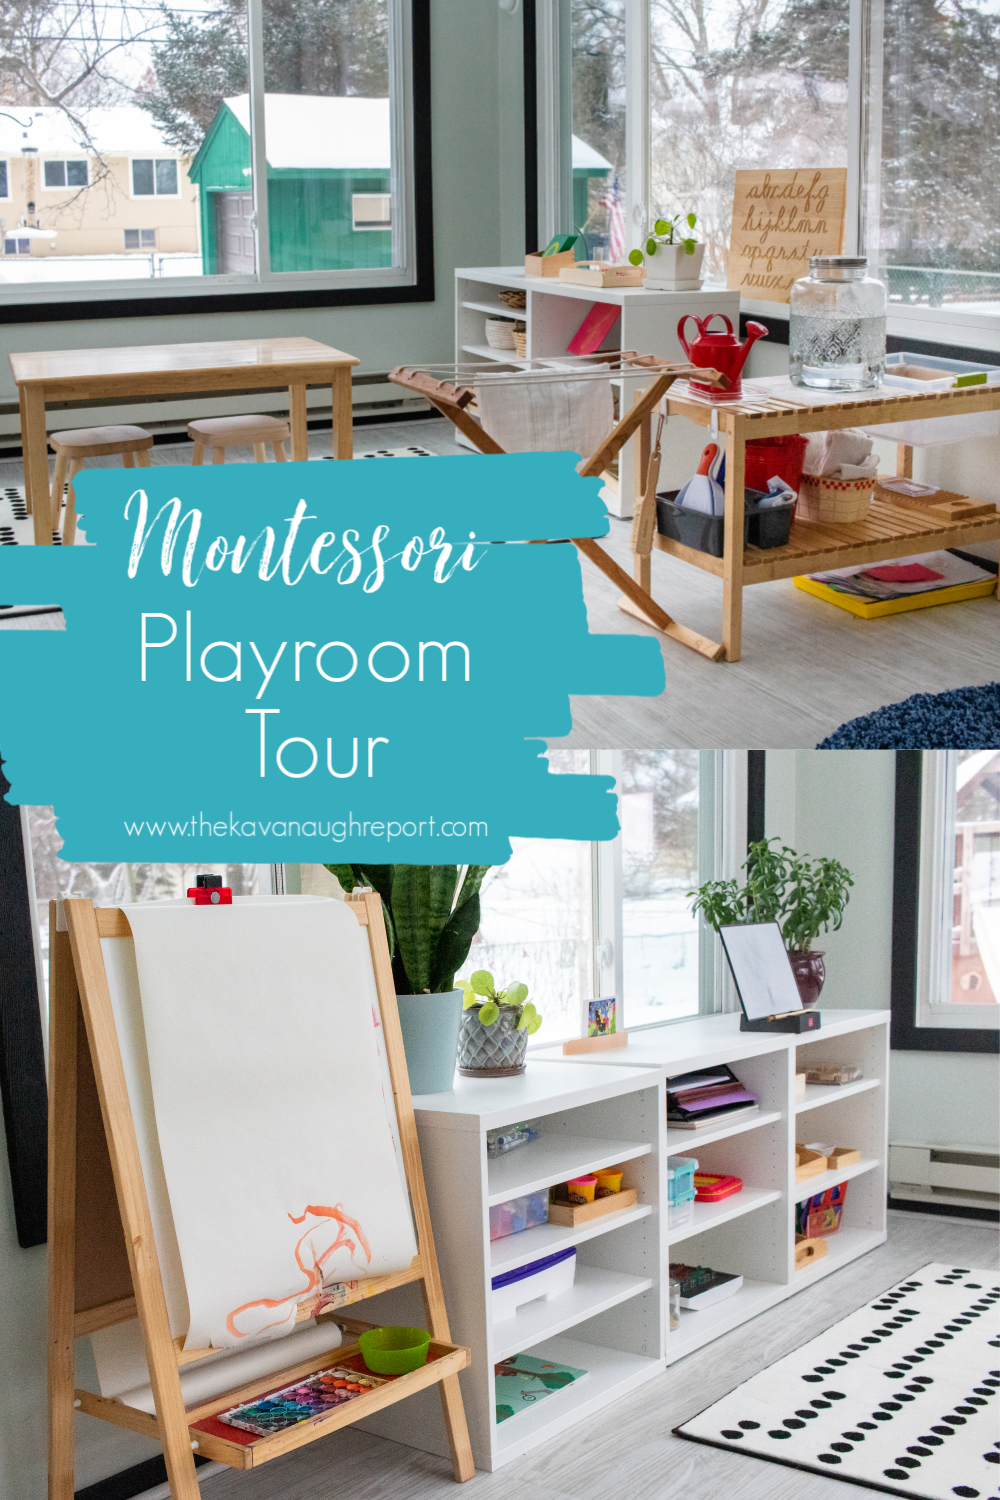 A look at our multi-use, multi-age Montessori playroom, including art area and Montessori baby space.